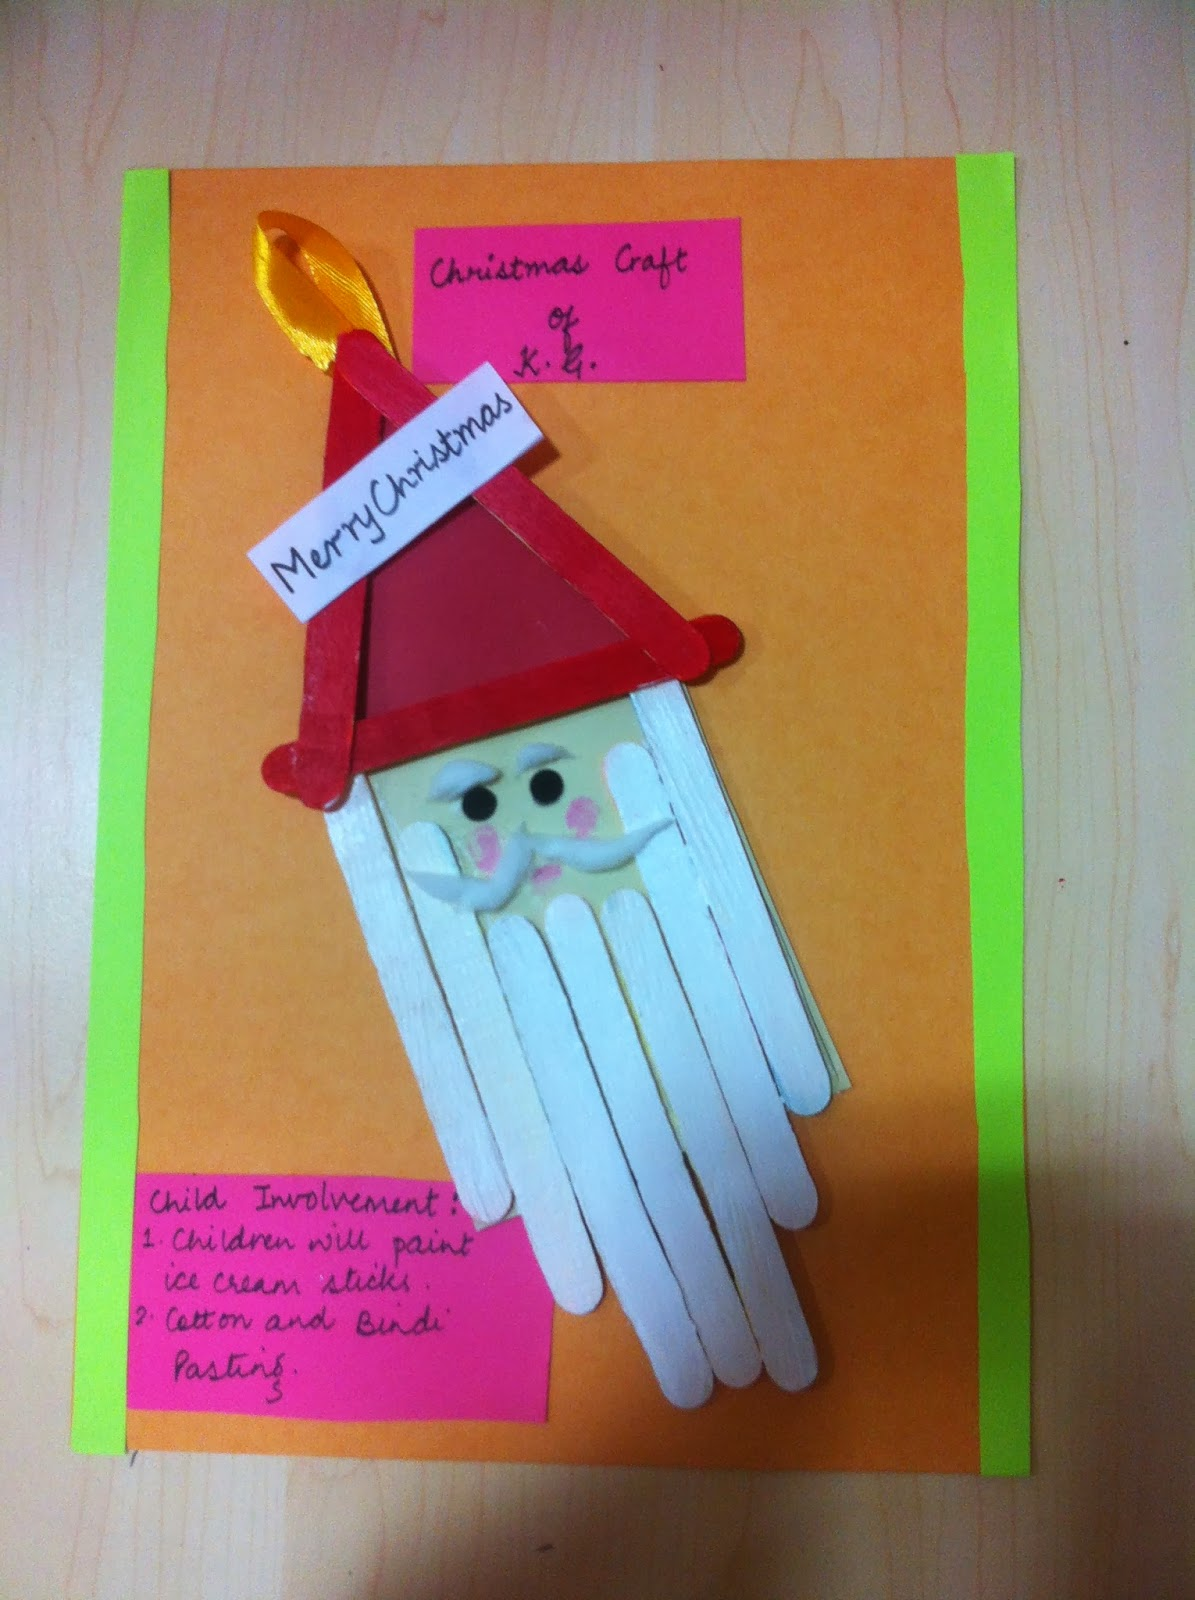 So Are KidsMy Colleague Kanika Bhardwaj Helped Her Students To Make Santa With Paper And Ice Cream Sticks Posted By Manishas CraftIdeas